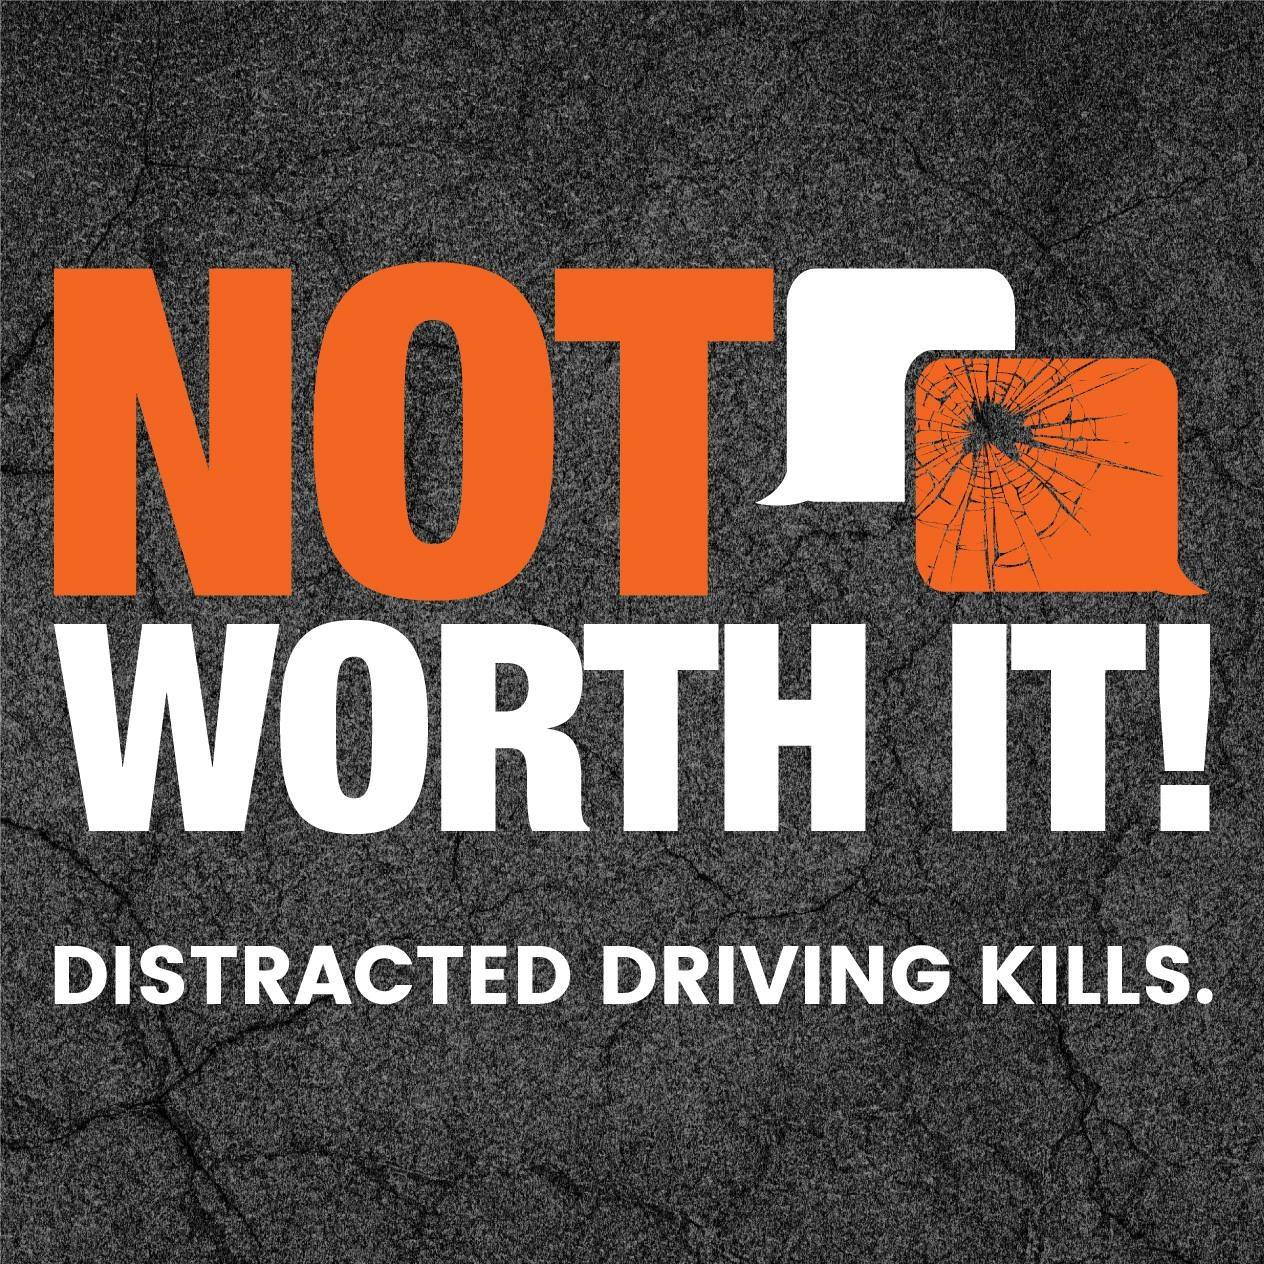 """distracted driving kills """"it was a combination of reckless driving and distracted driving that took the lives of officer griess and mr manuel and that is something that we are deeply saddened about."""